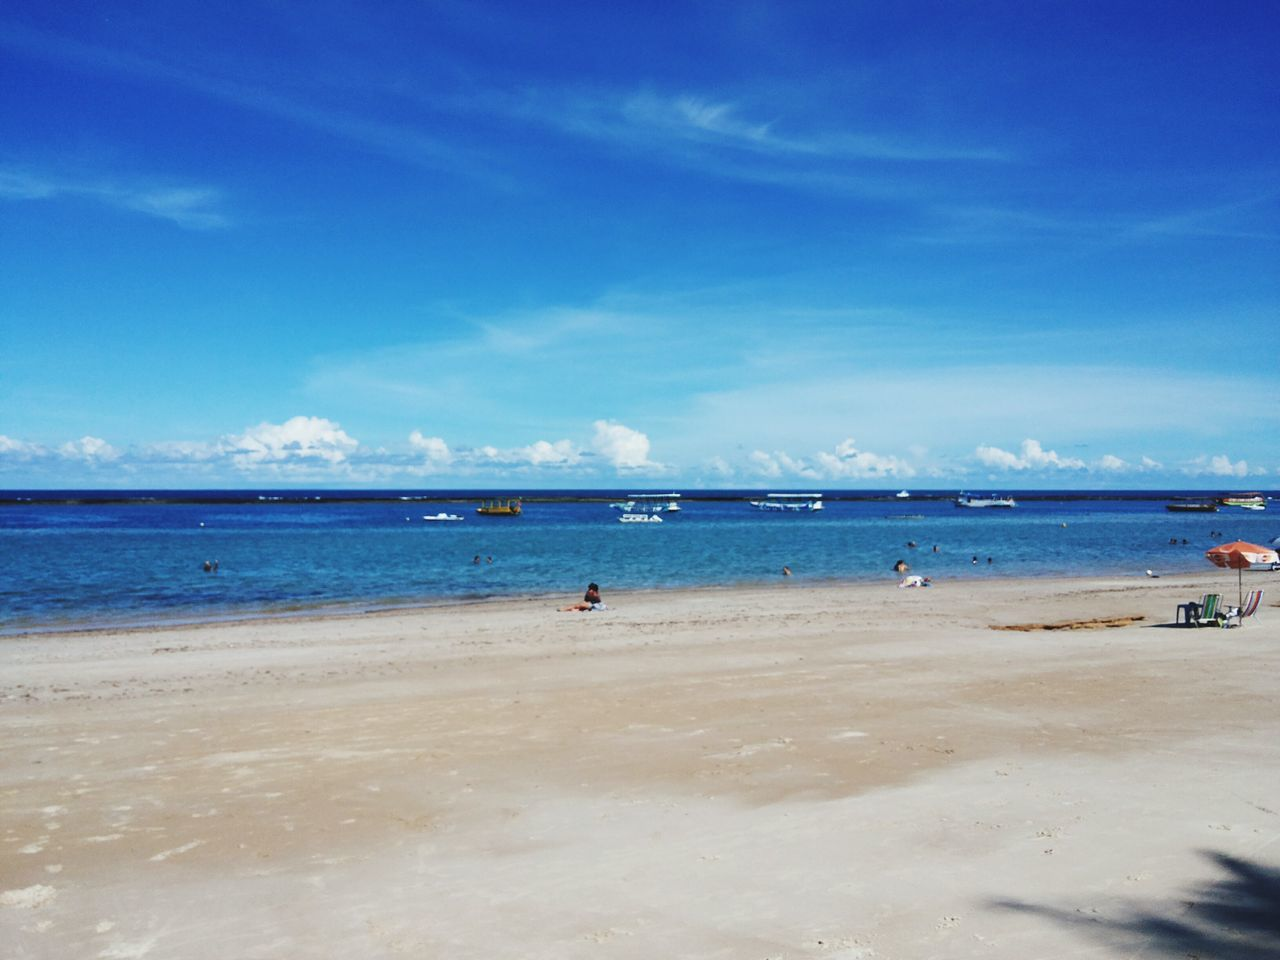 sea, beach, sky, water, sand, scenics, beauty in nature, horizon over water, nature, blue, cloud - sky, day, tranquility, outdoors, vacations, no people, jet boat